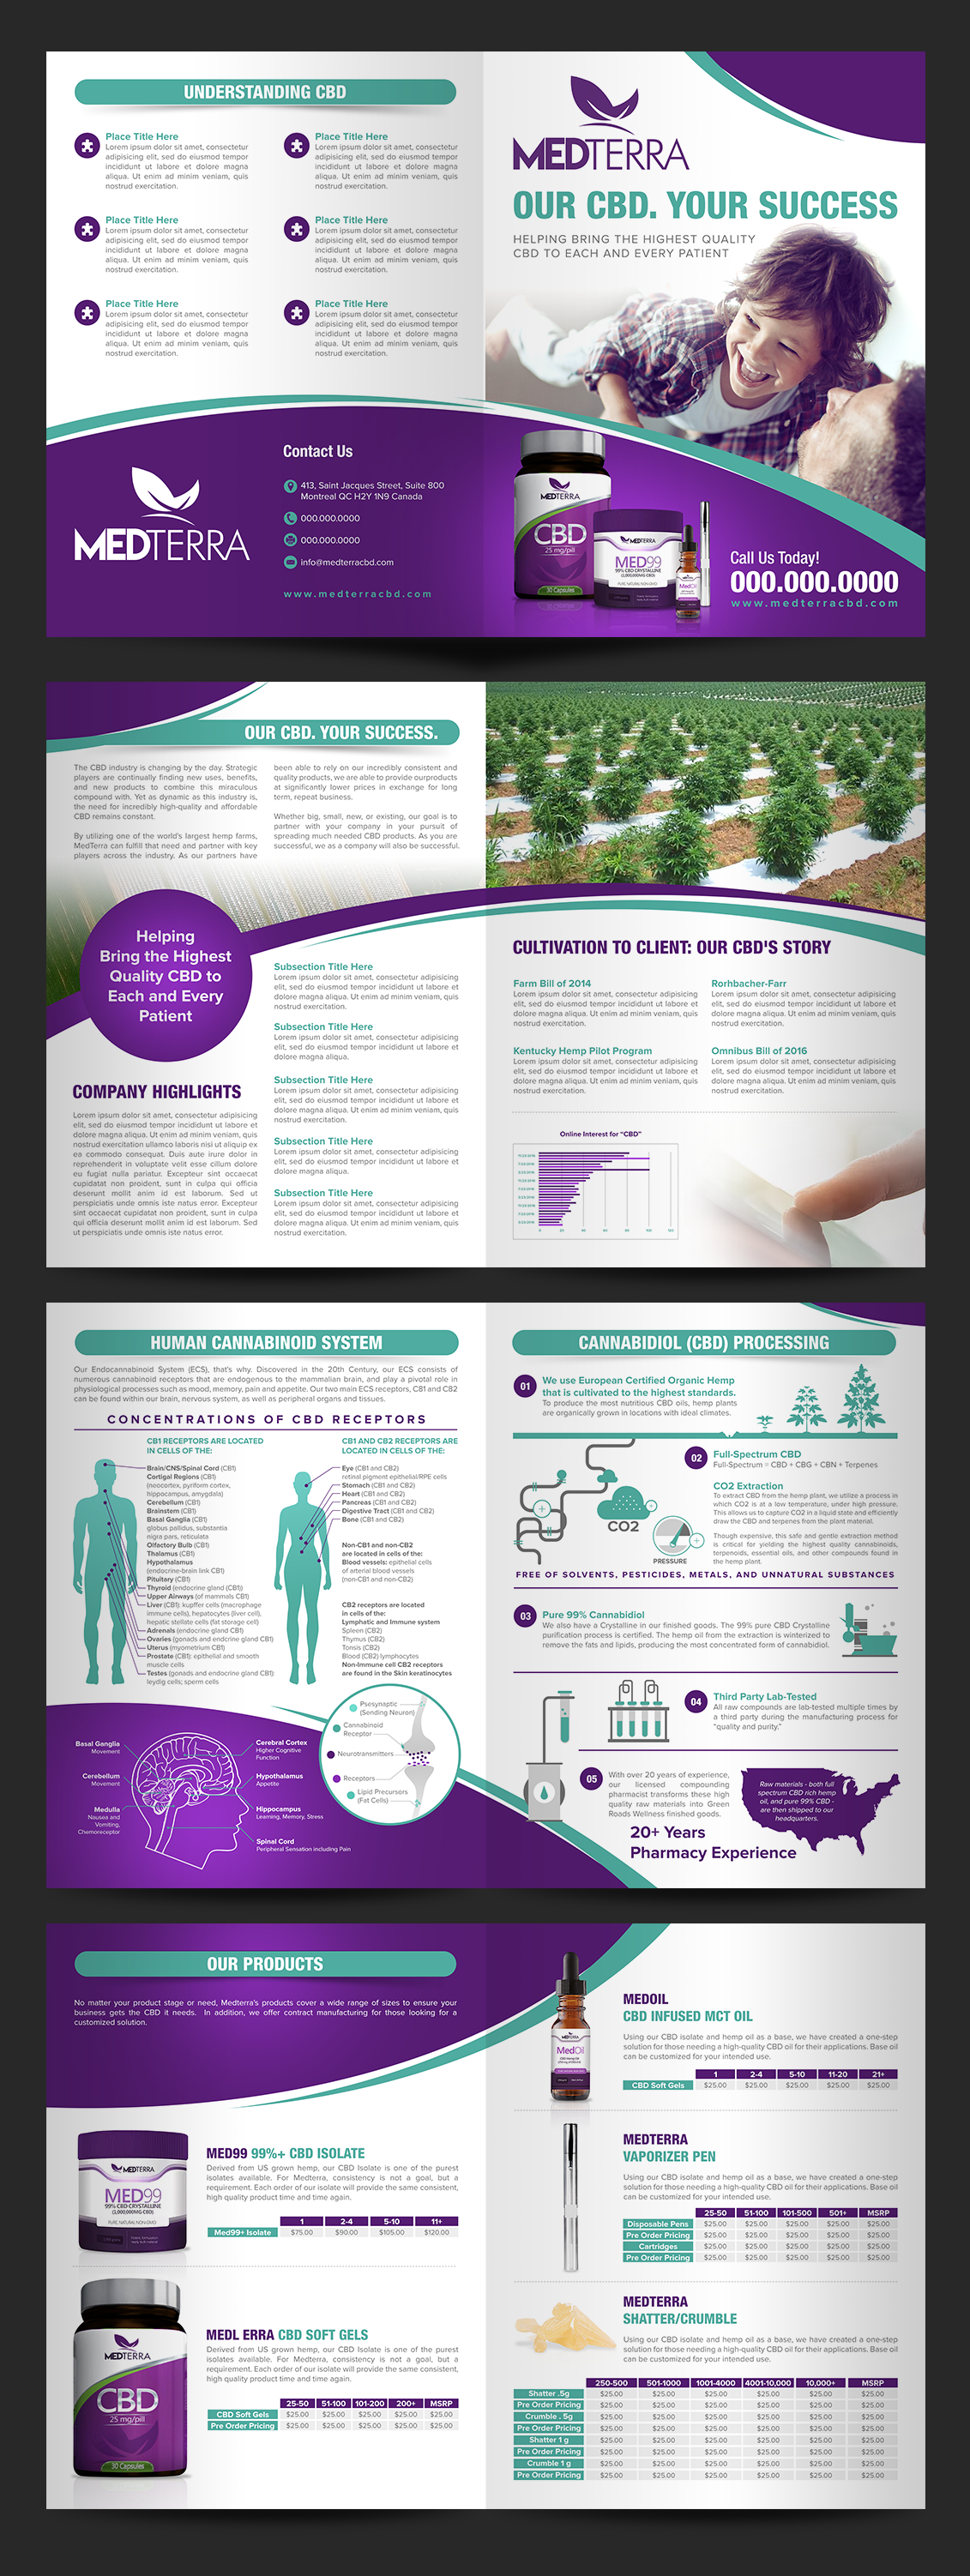 MedTerra - Doctor and Physician Informational Brochure